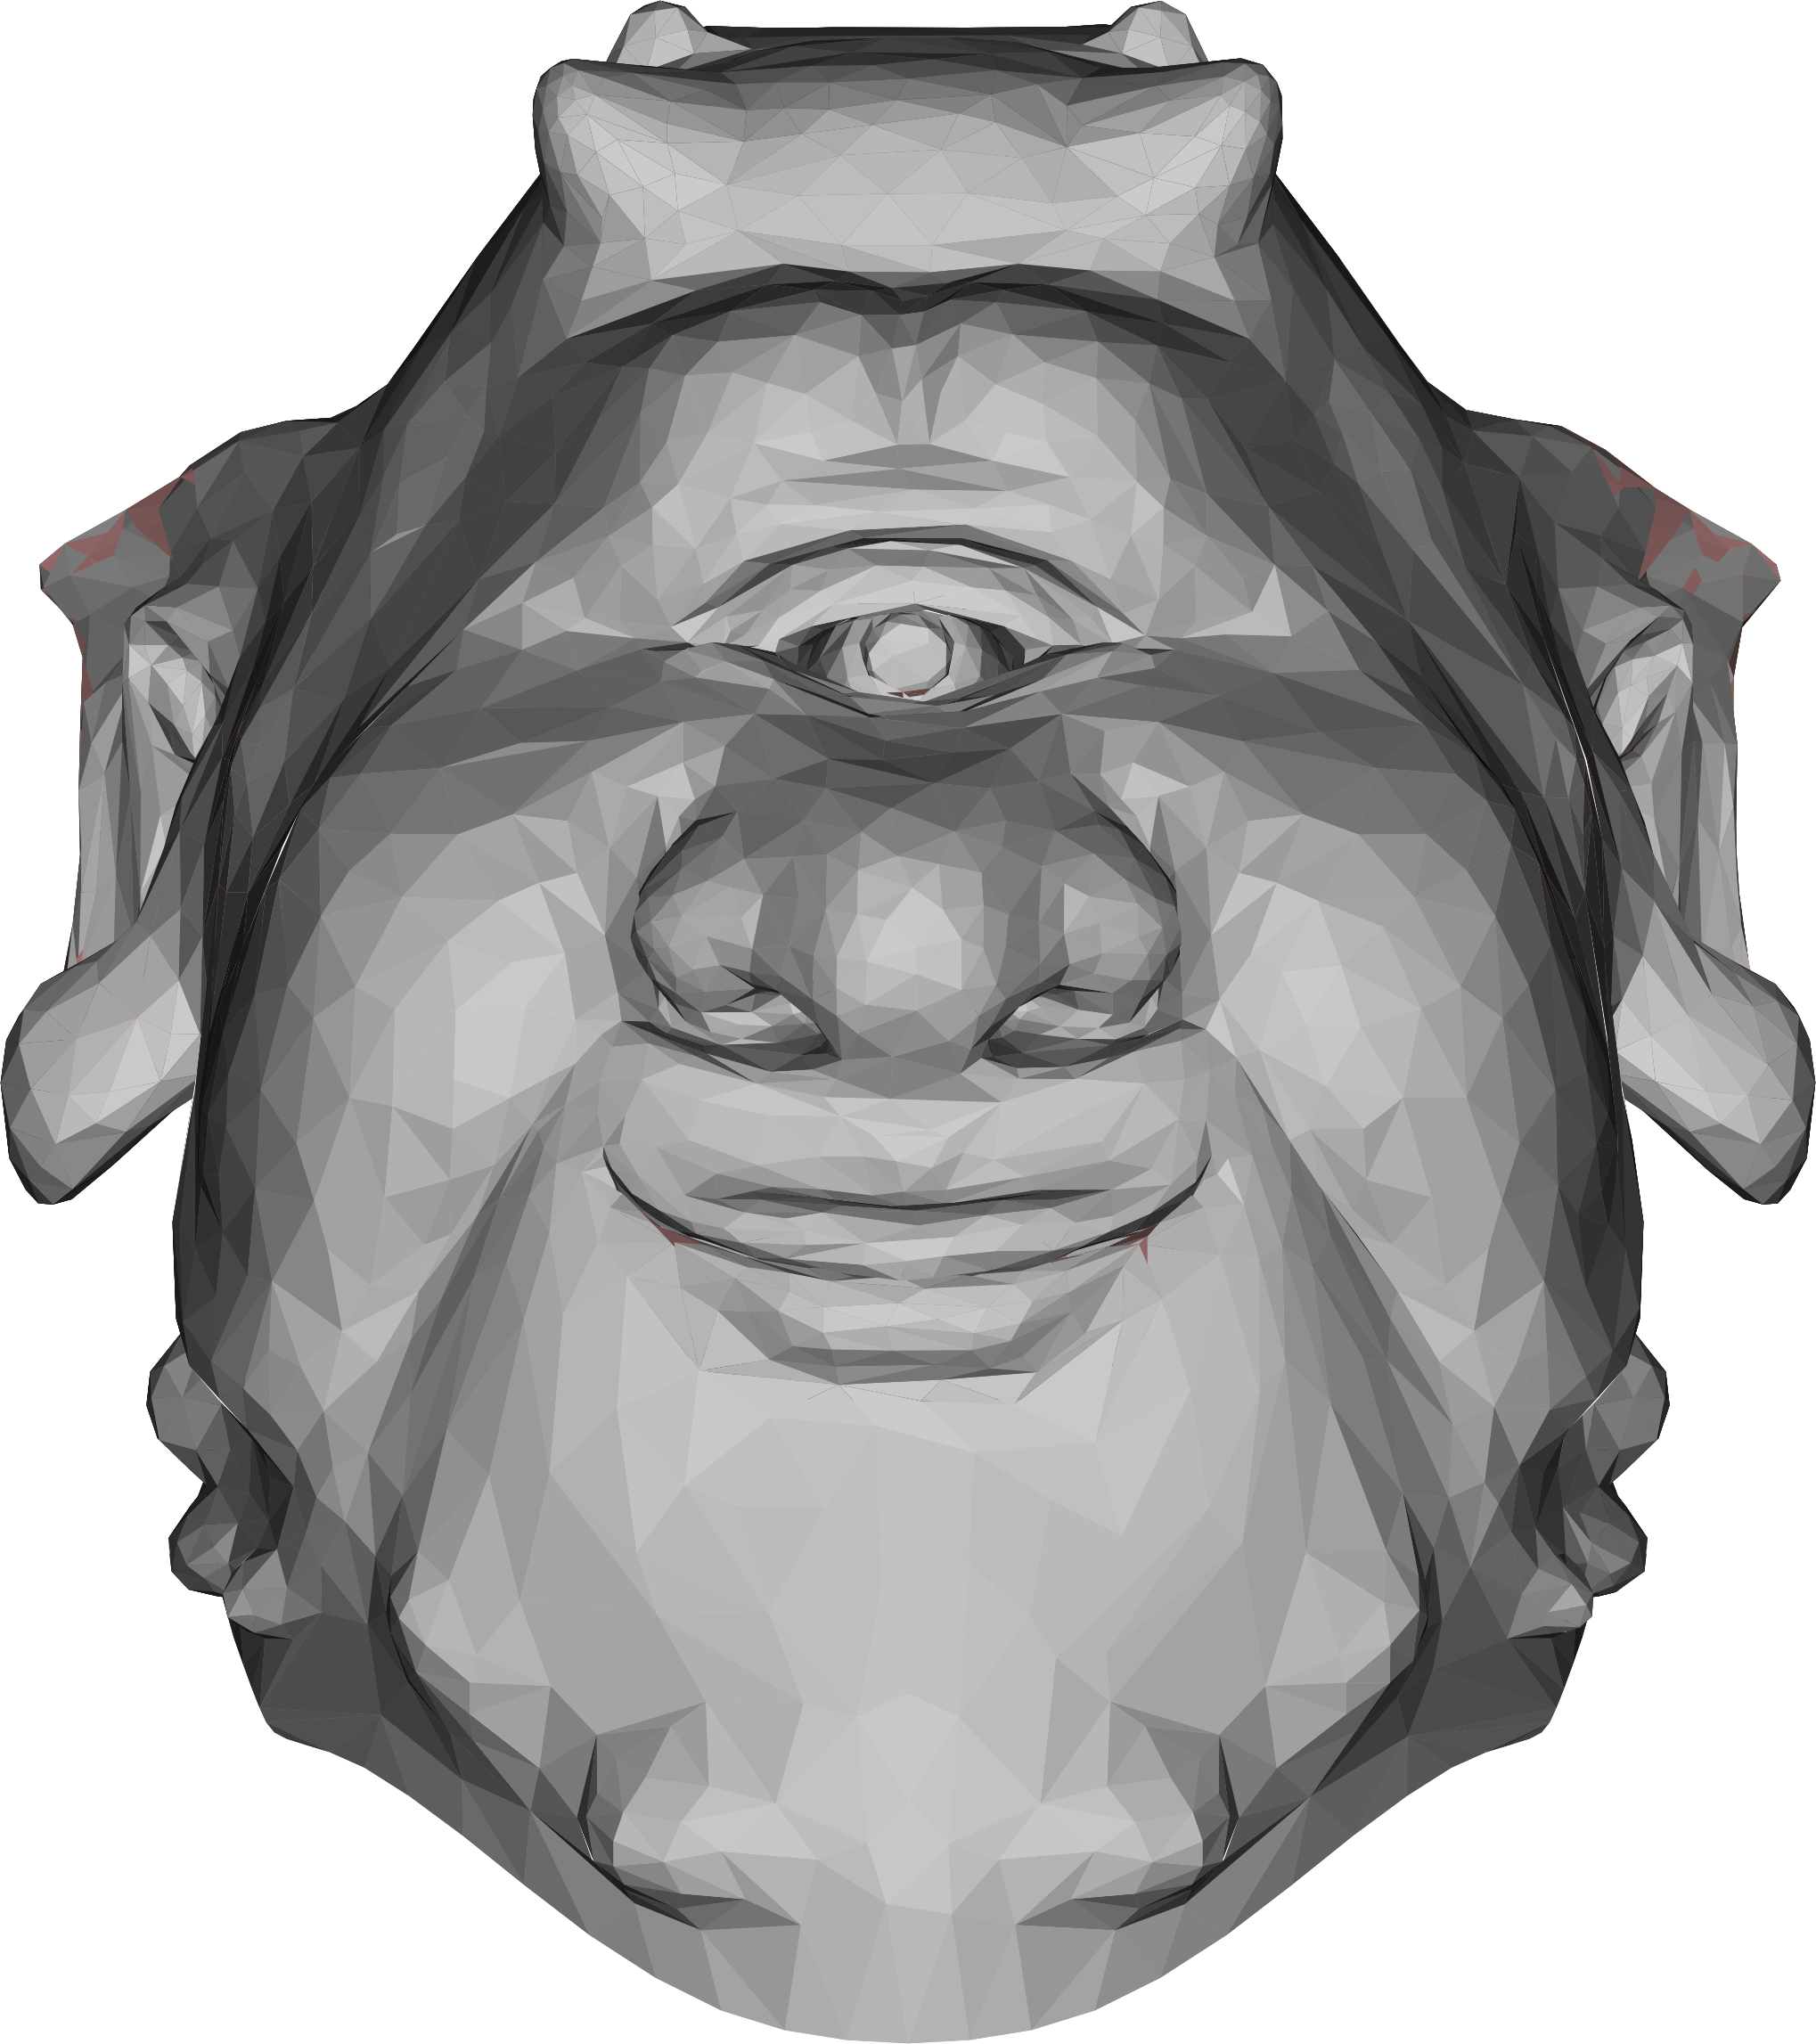 Low Poly Ogre Head by GDJ